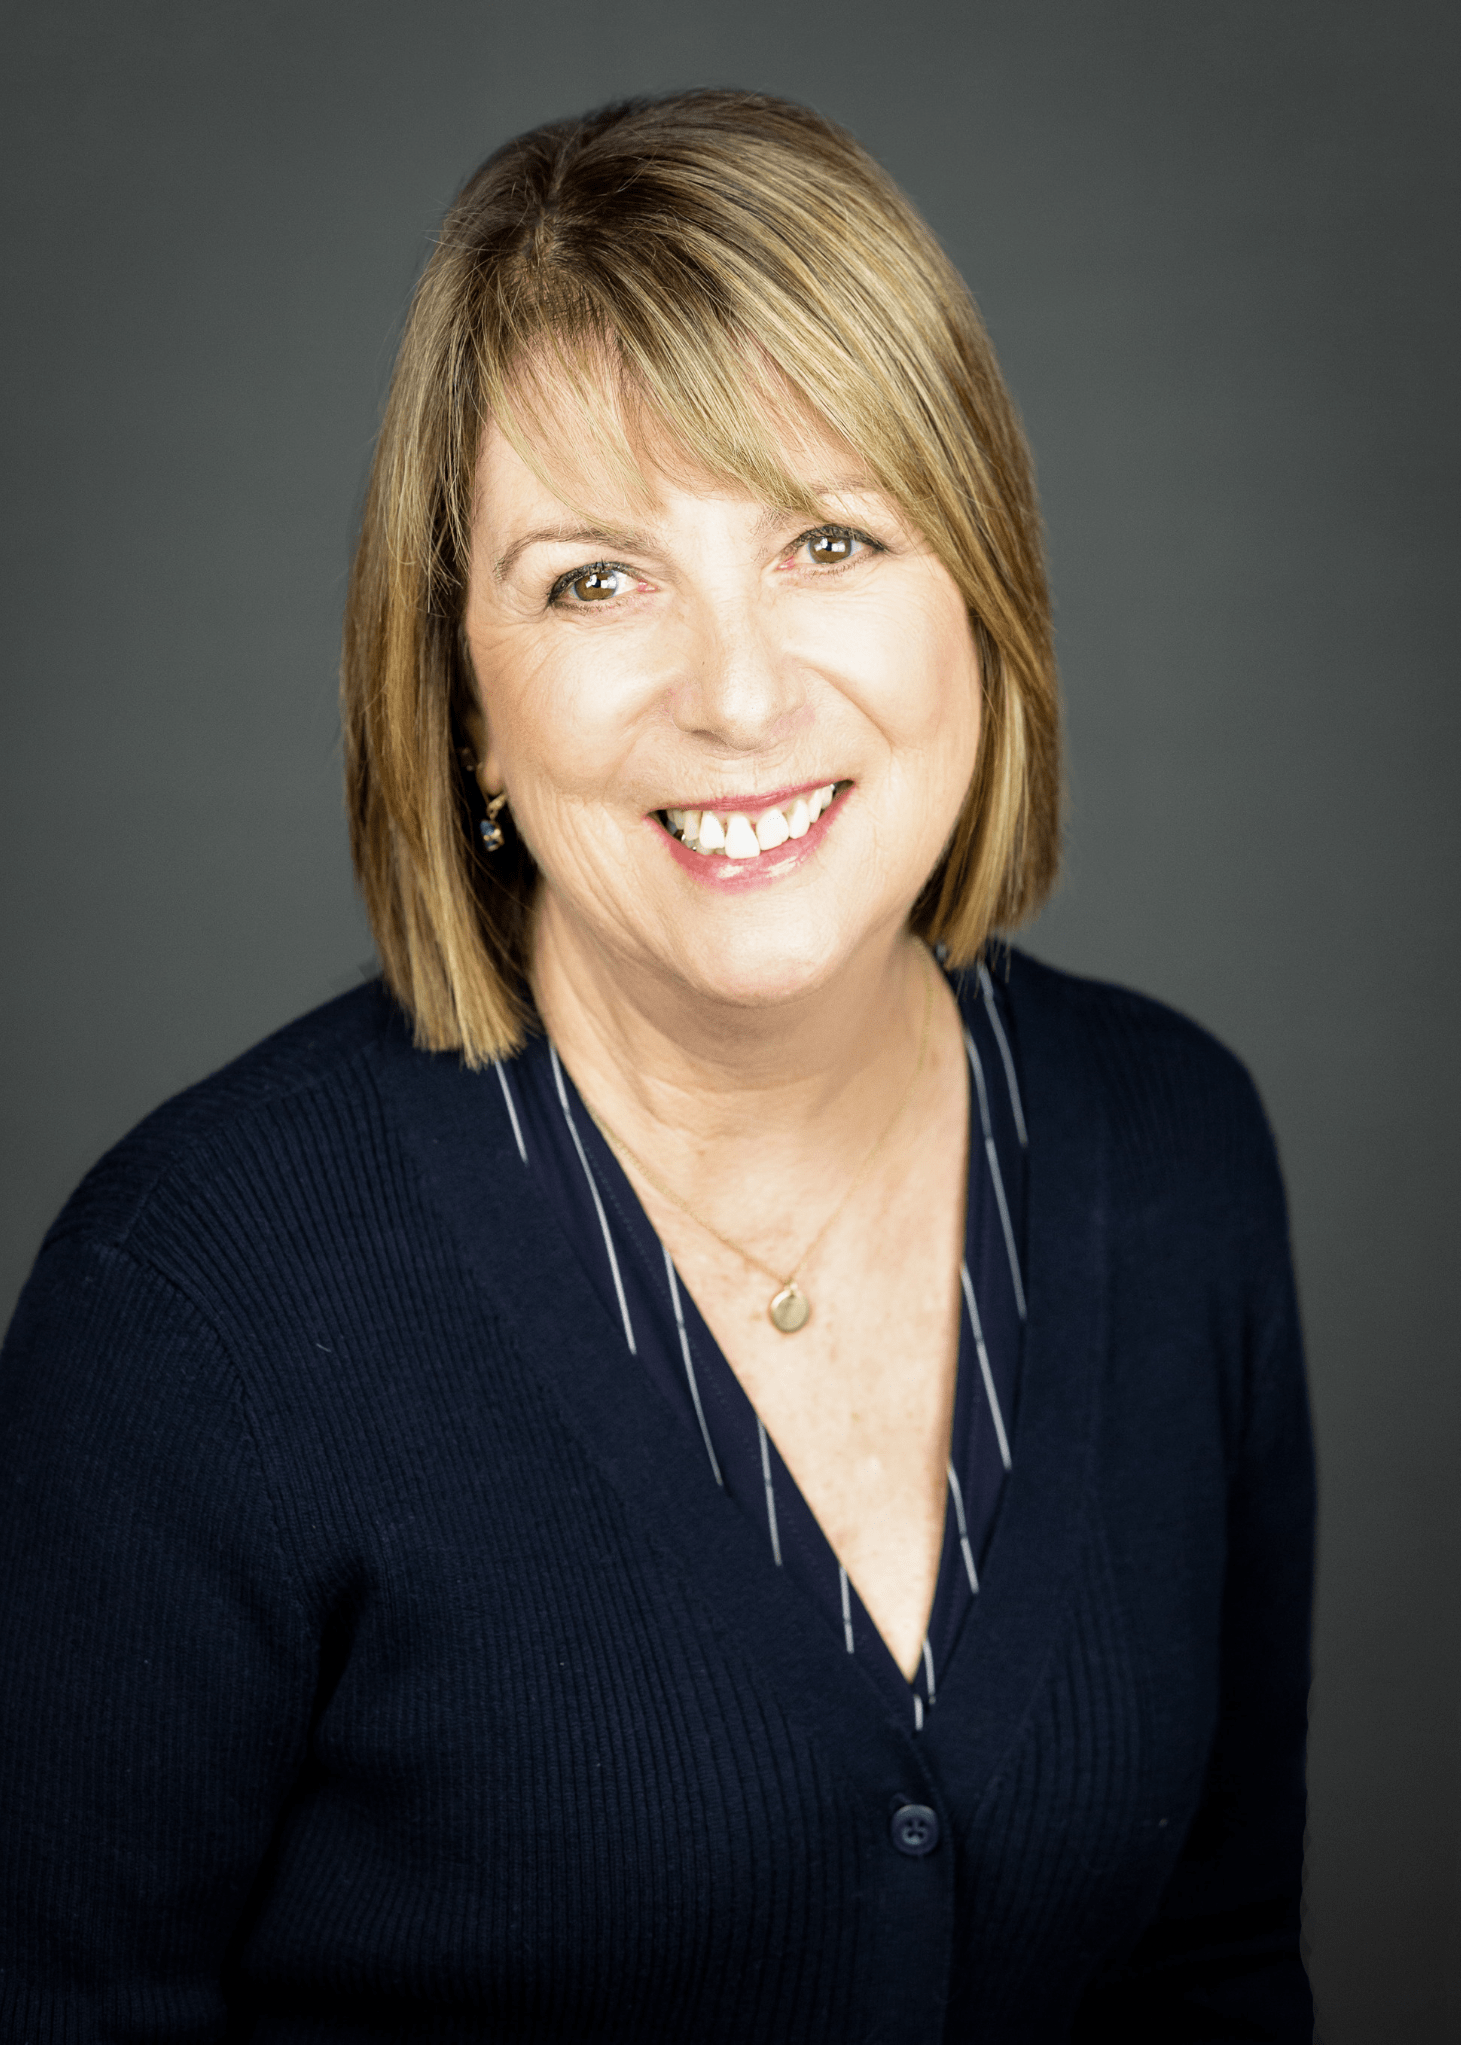 Debbie Merritt, Windermere, Real Estate, Whidbey Island, Whidbey, Homes, Buy, sell, invest, listing agent, agent, trusted realtor, selling agent